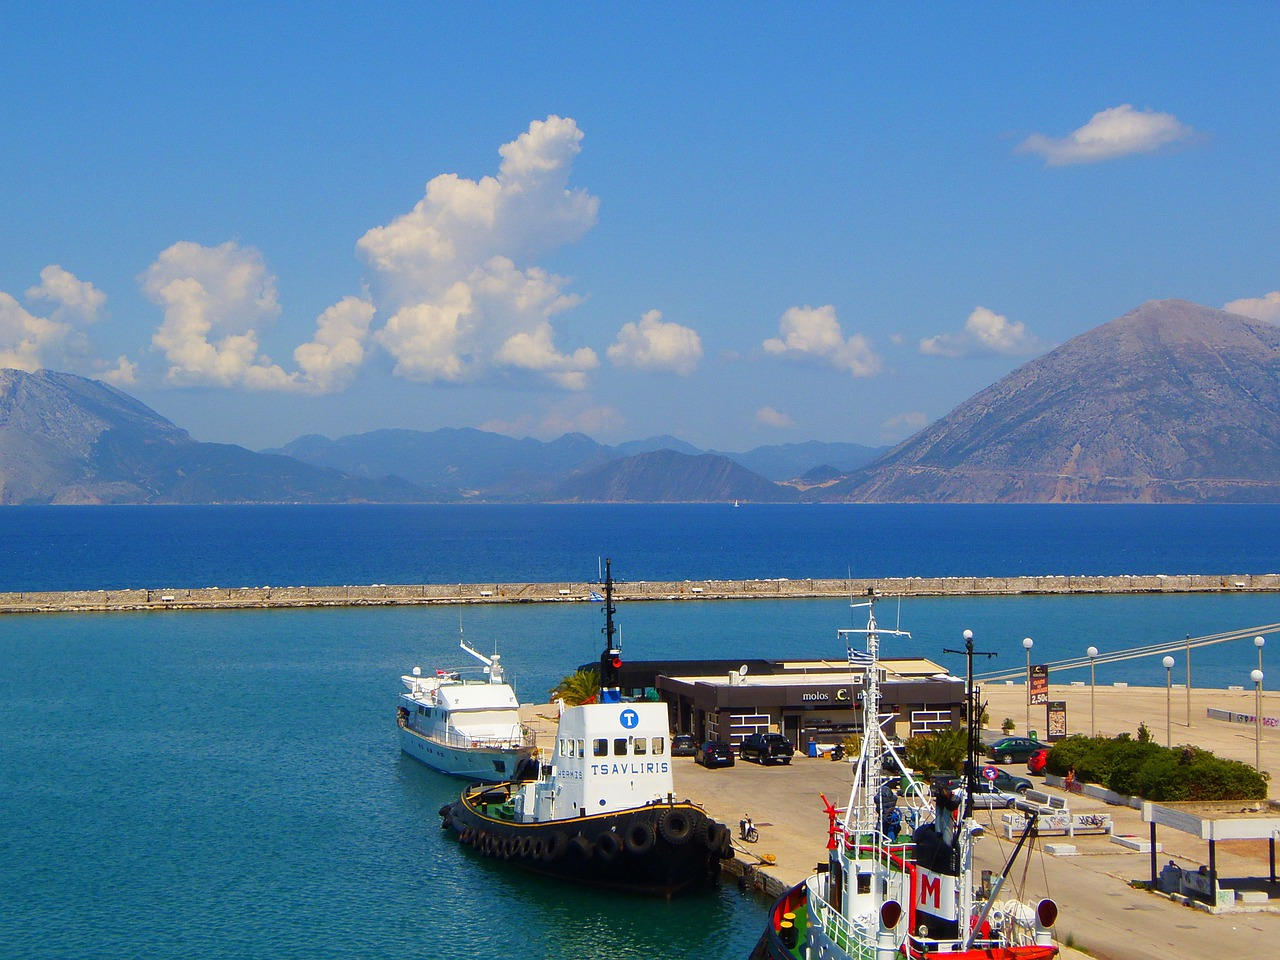 Part of the Harbour at Patras in the Peloponnese, Greece